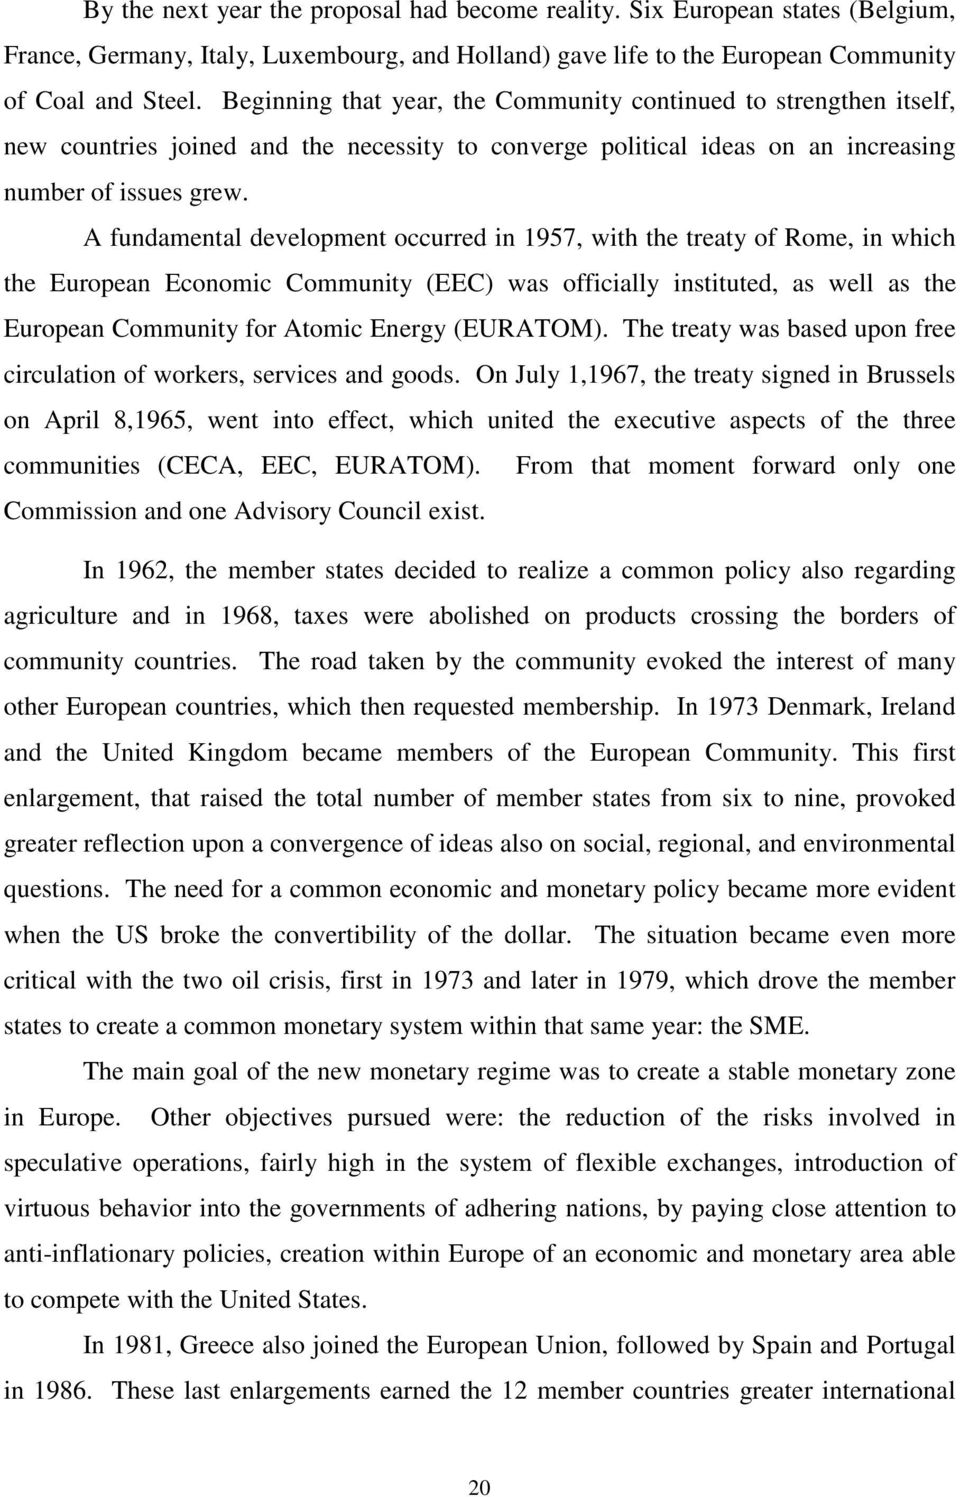 A fundamental development occurred in 1957, with the treaty of Rome, in which the European Economic Community (EEC) was officially instituted, as well as the European Community for Atomic Energy